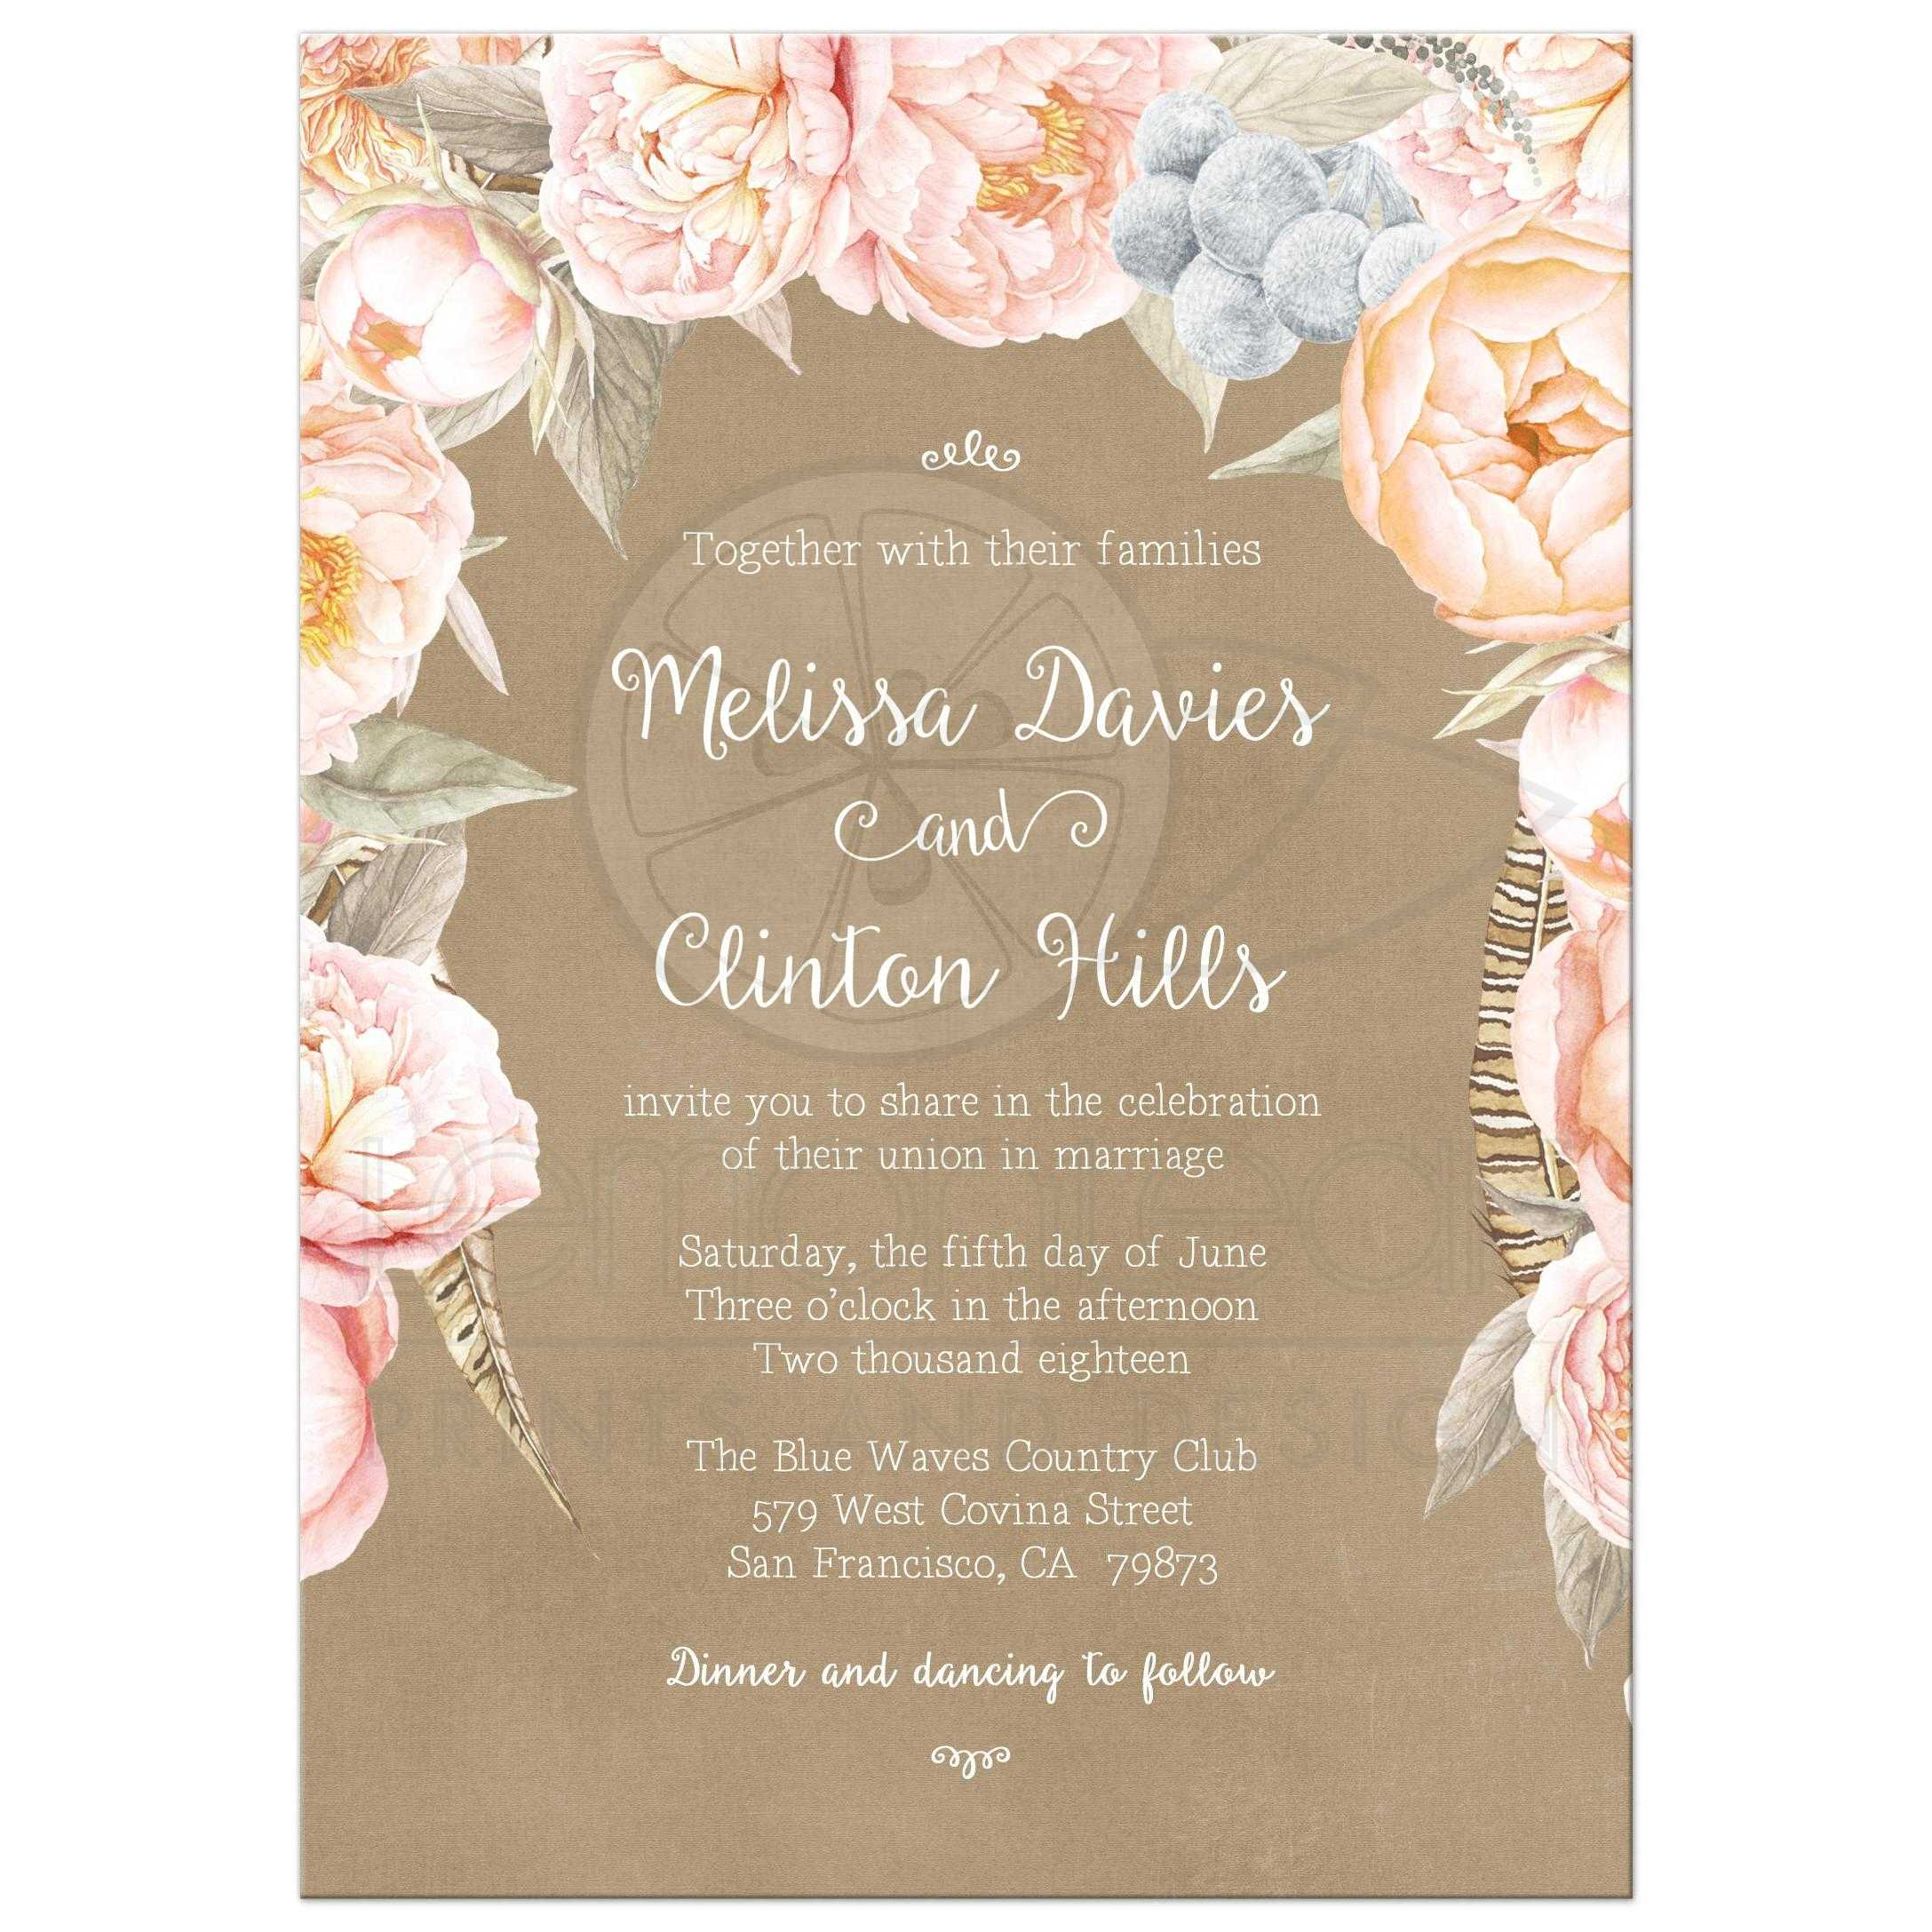 Pink Vintage Floral Peony Border Wedding Invitation Kraft – Floral Wedding Invitations